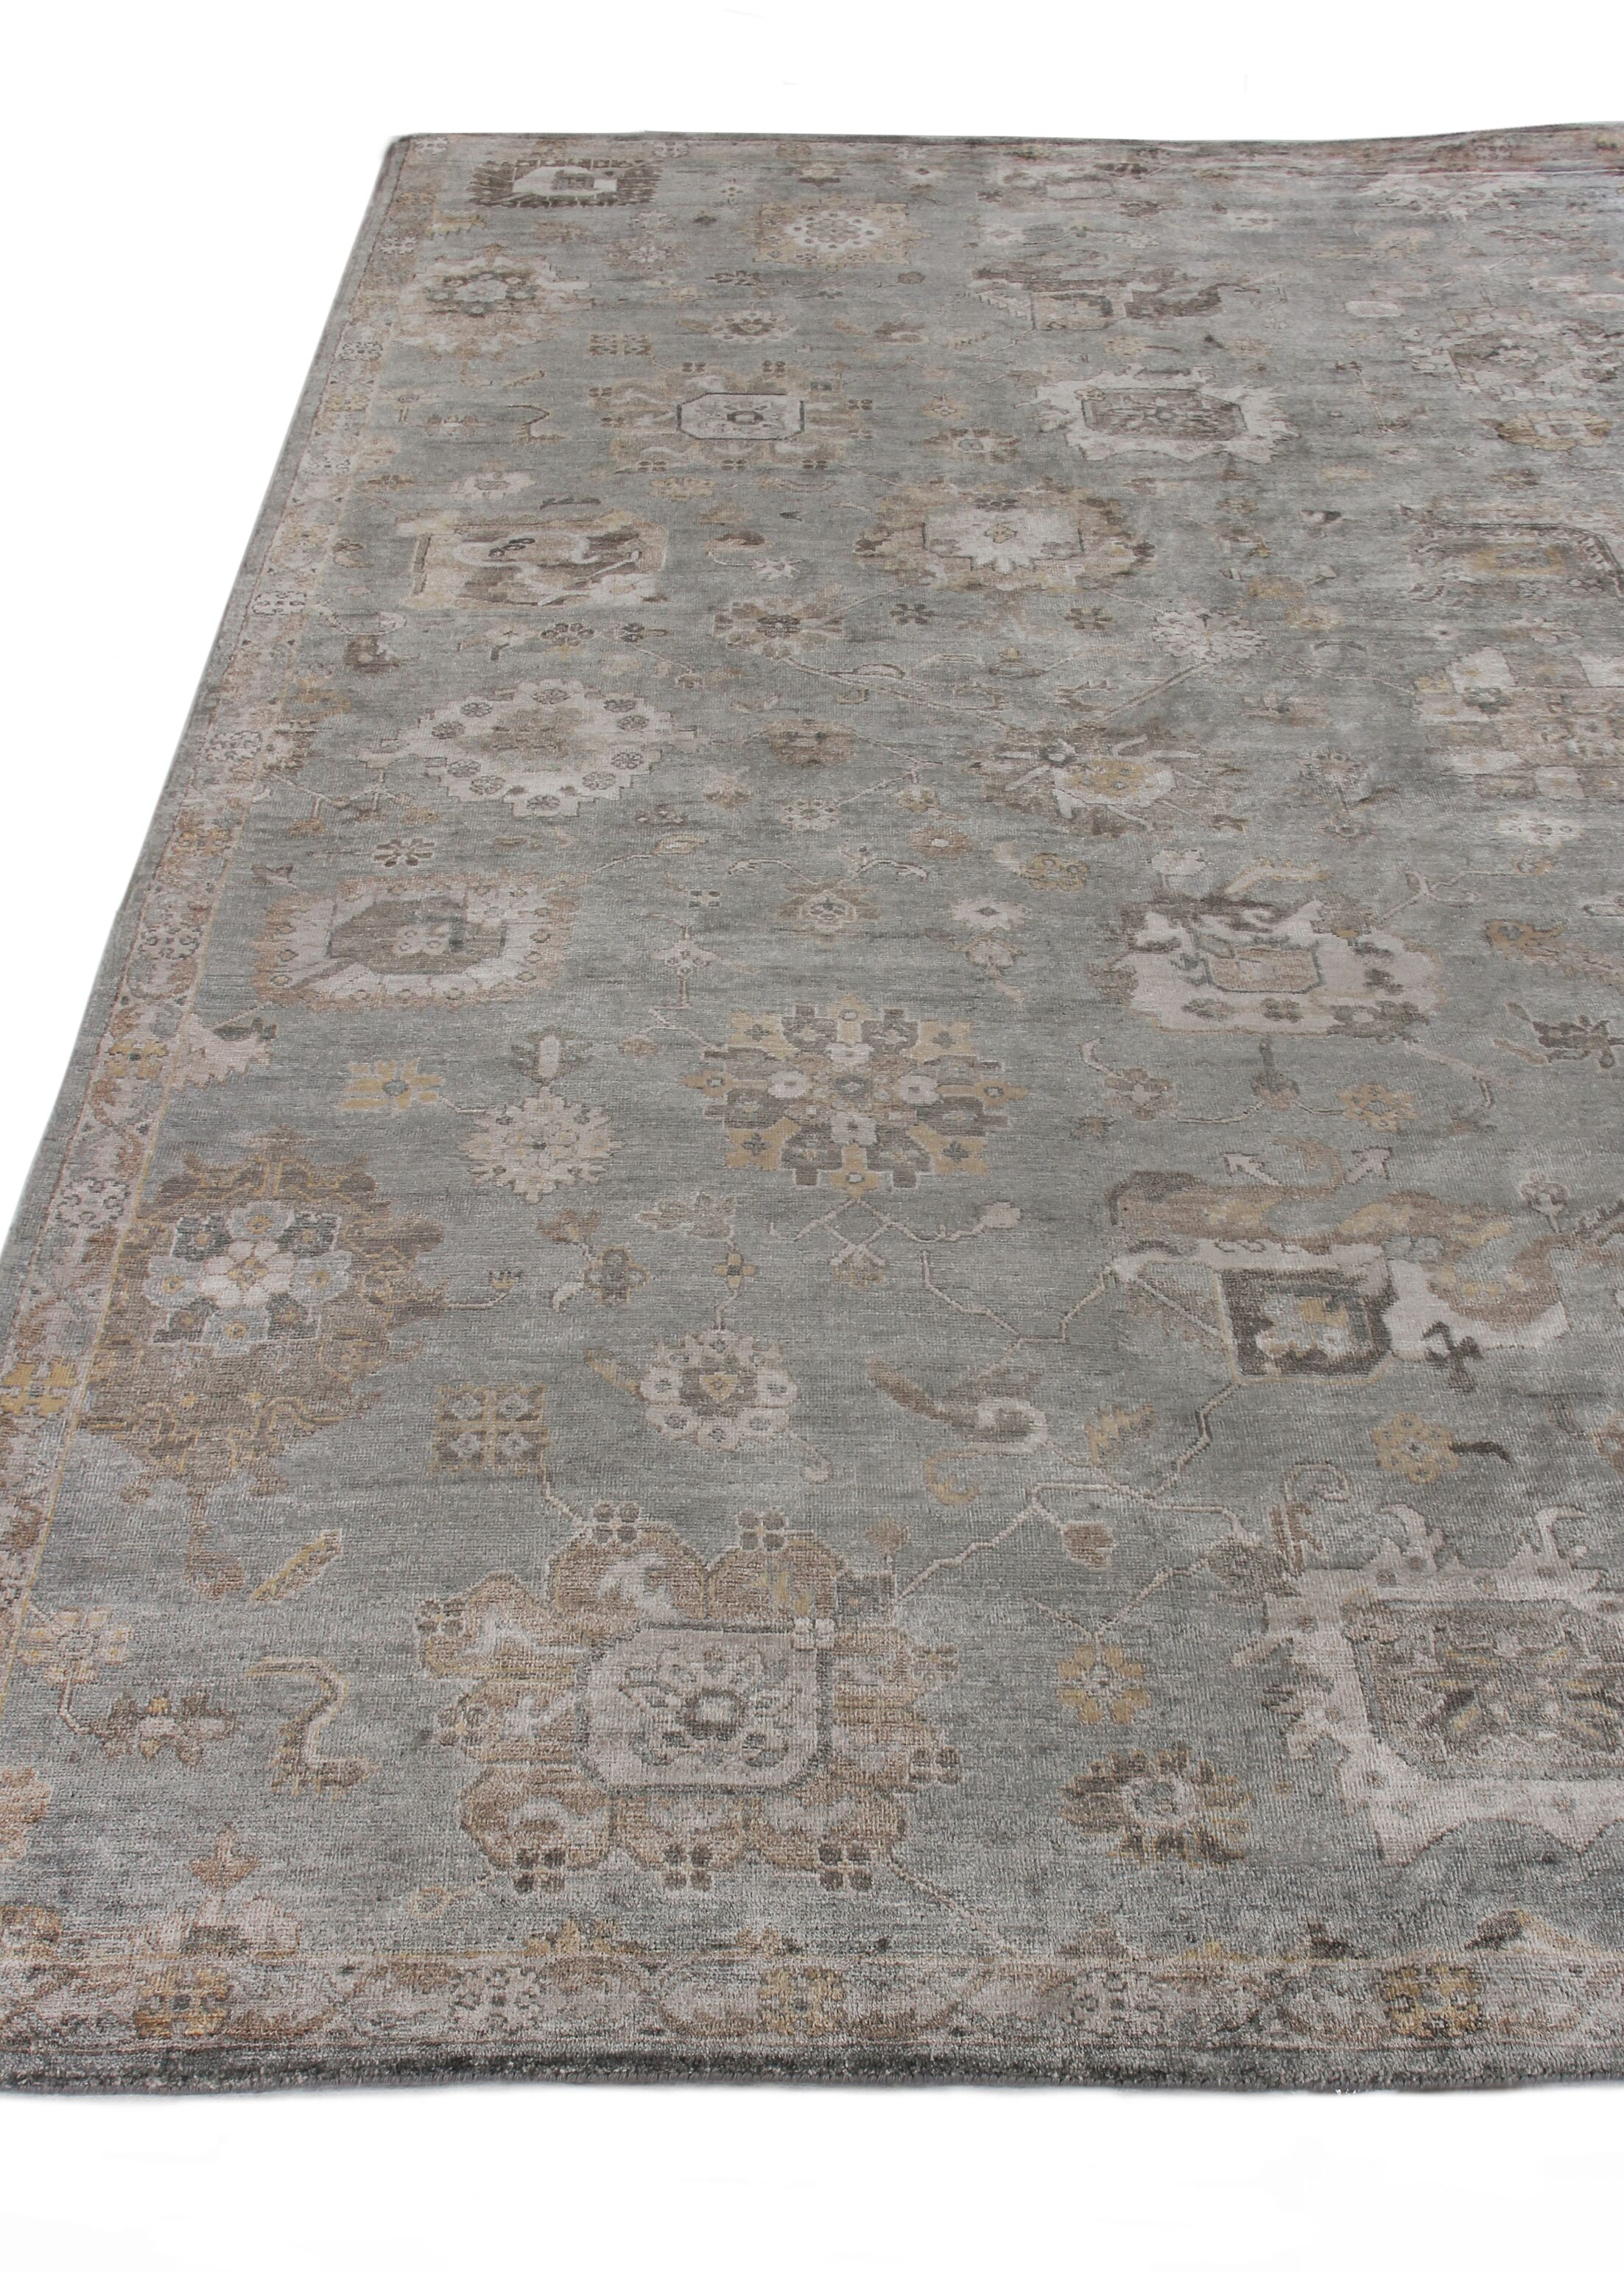 Museum Hand-Knotted Brown/Gray Area Rug Rug Size: Rectangle9' x 12'